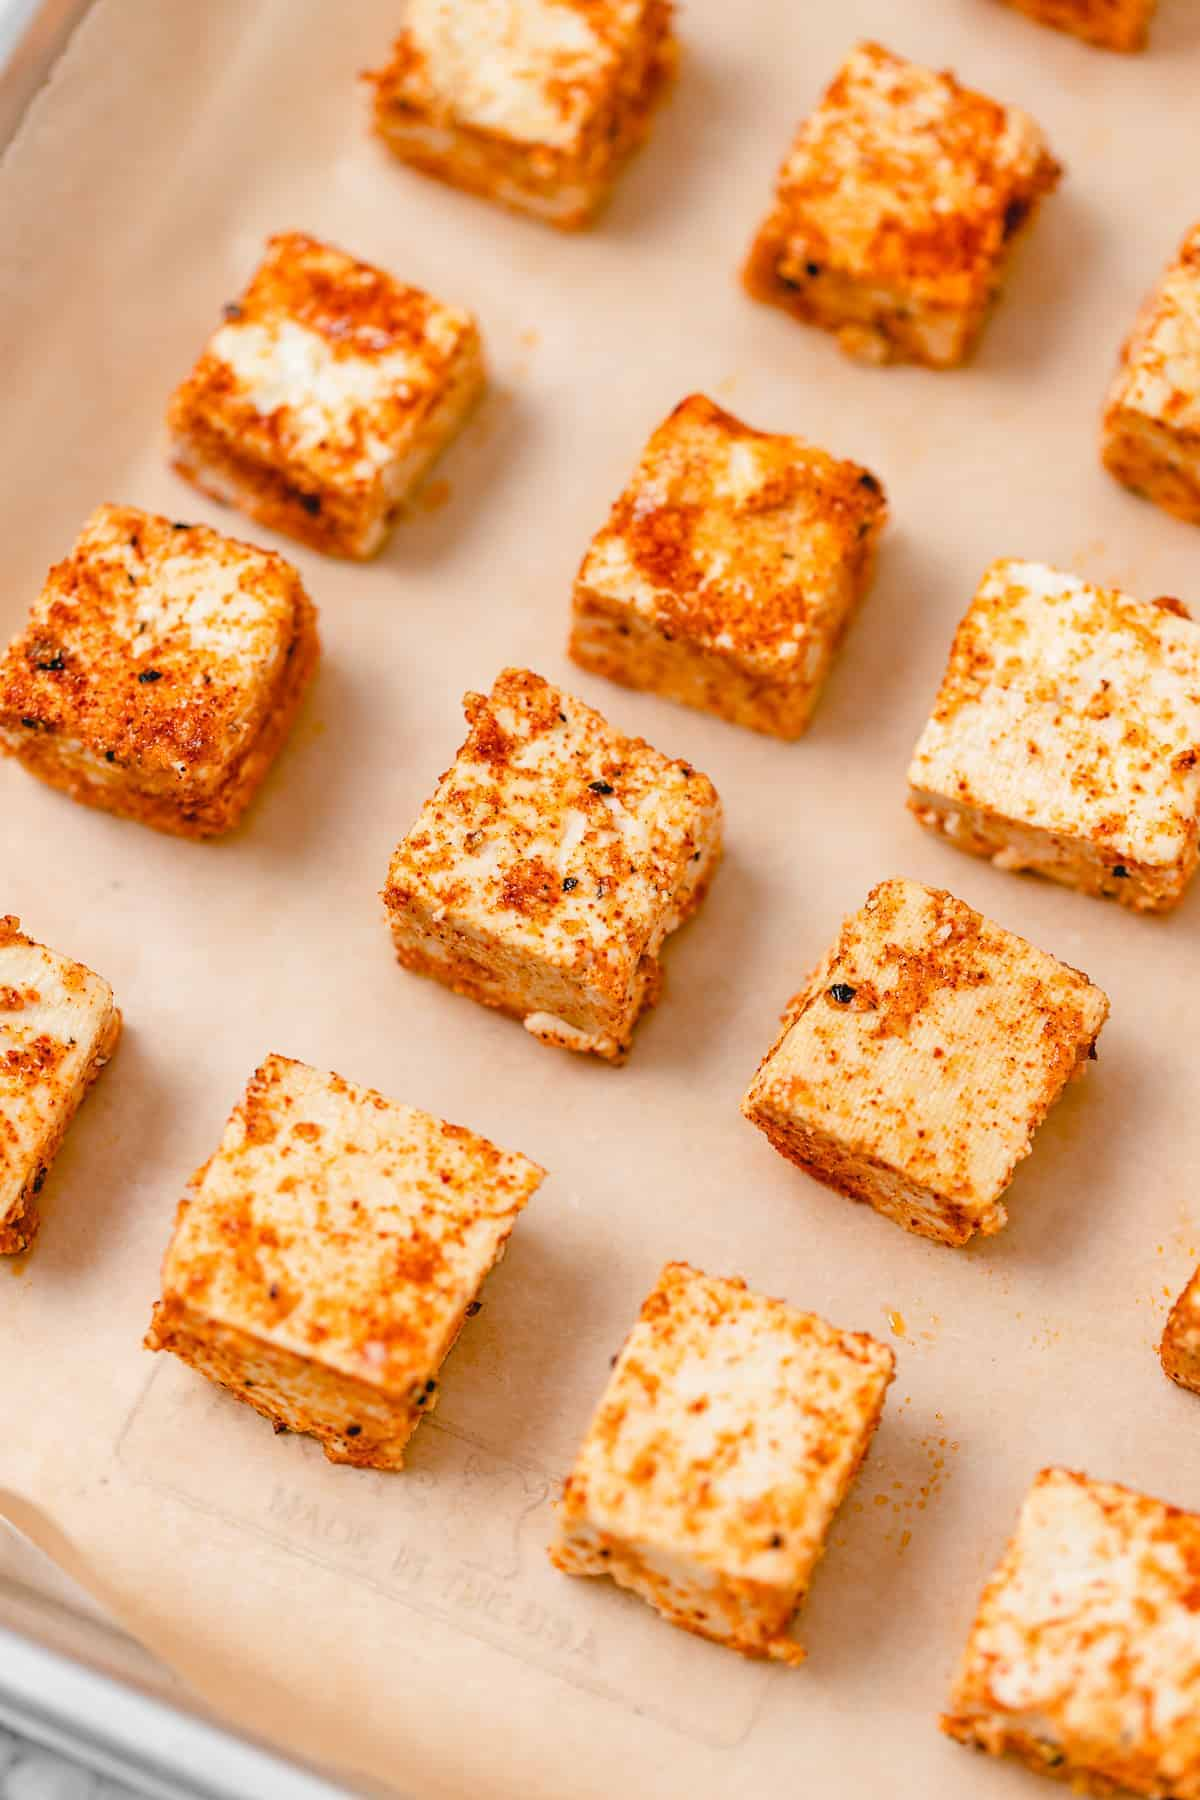 Cubes of uncooked firm tofu covered in seasoning on parchment paper